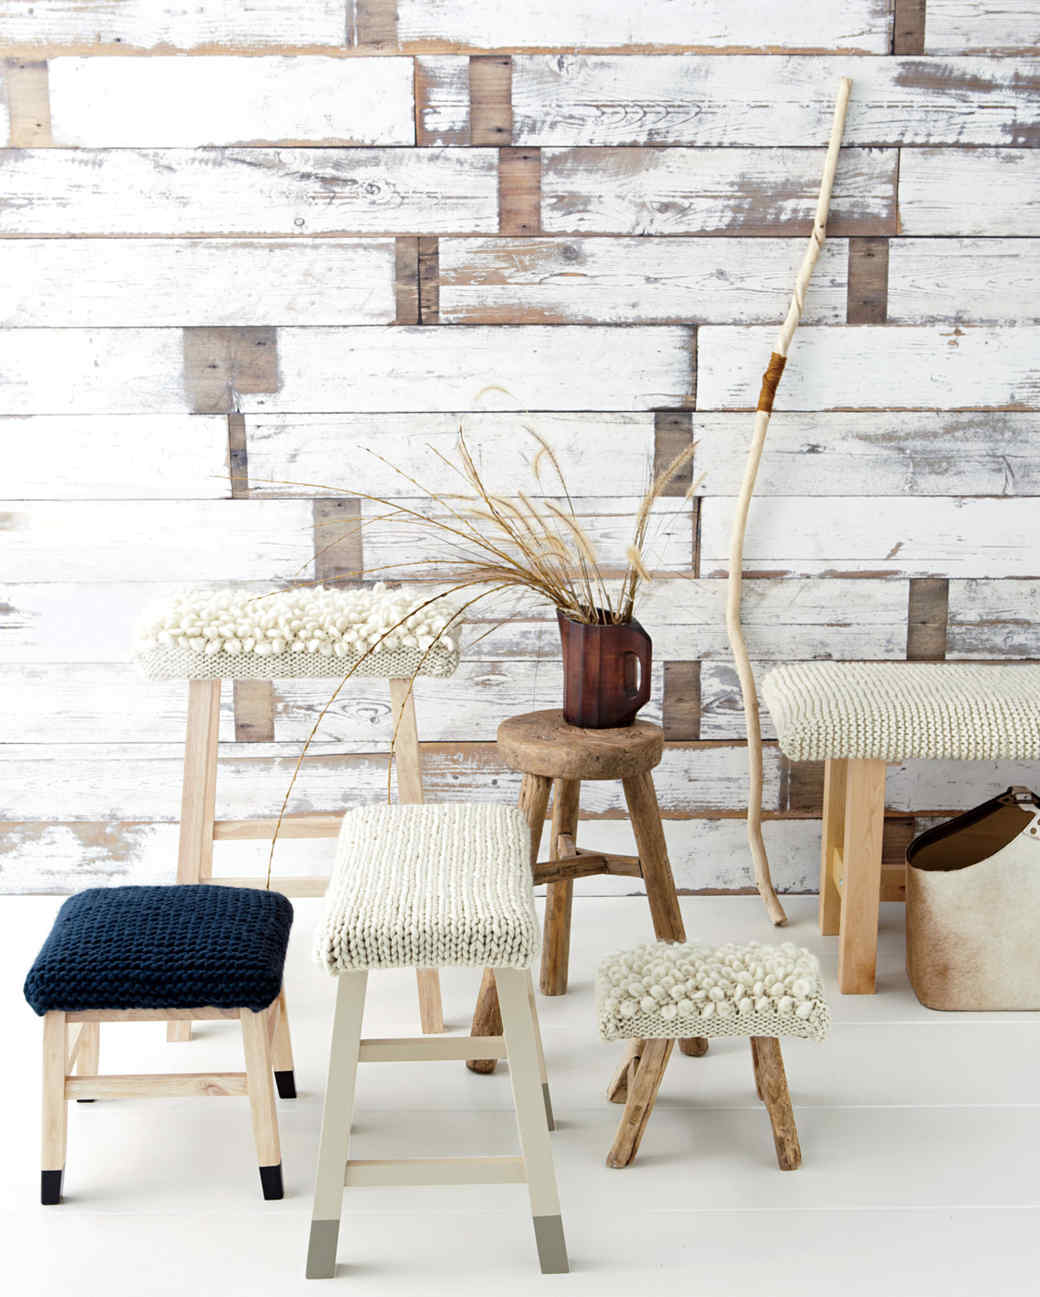 wool-stool-md107386.jpg